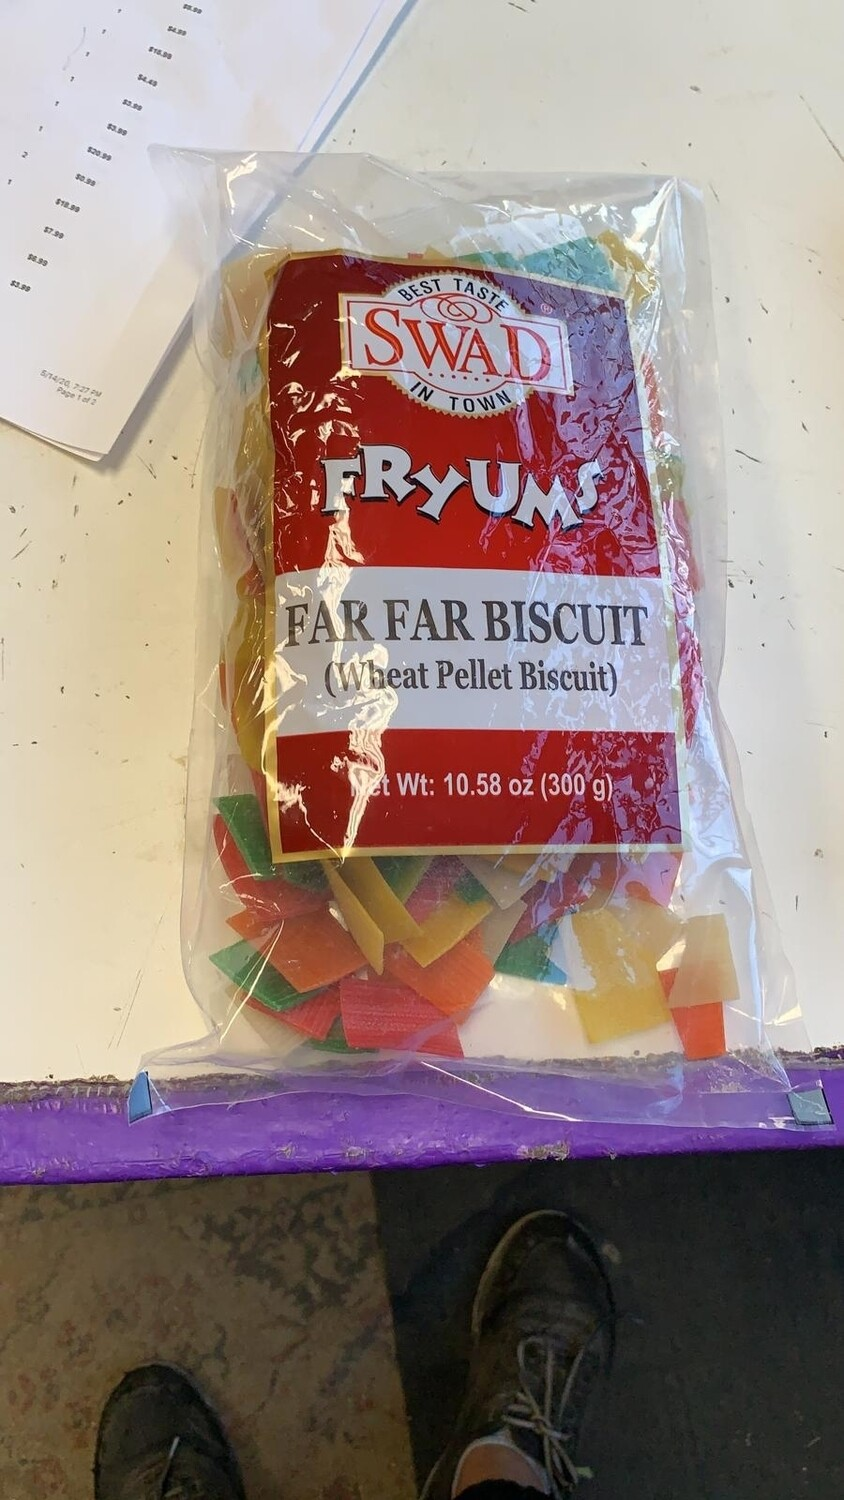 Swad far far biscuit 300g